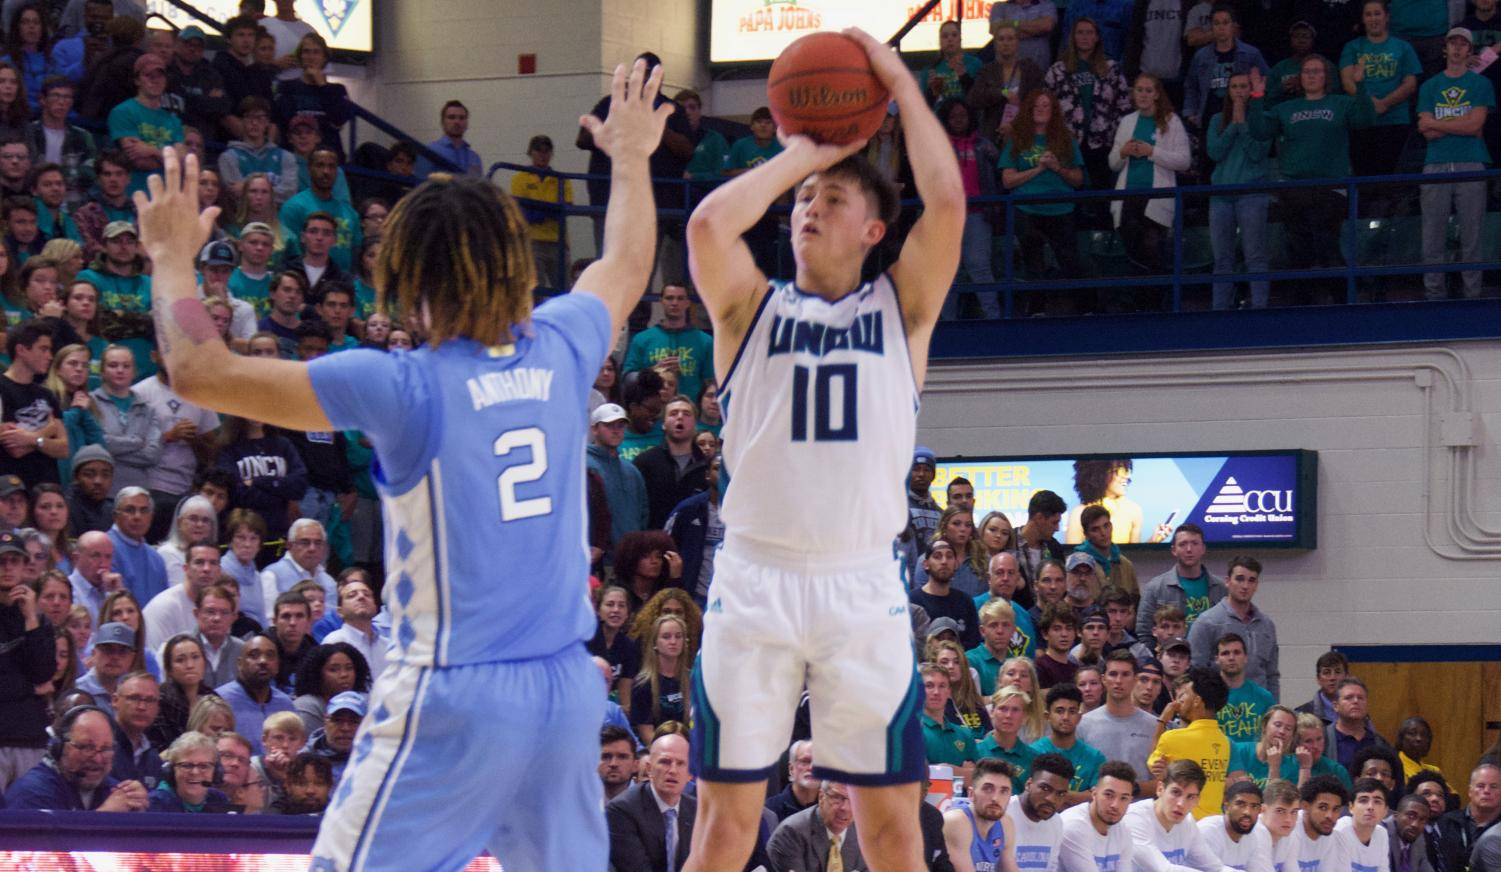 Kai Toews (10) attempts a three-pointer during UNCW's matchup with North Carolina on Nov. 8, 2019 at Trask Coliseum.